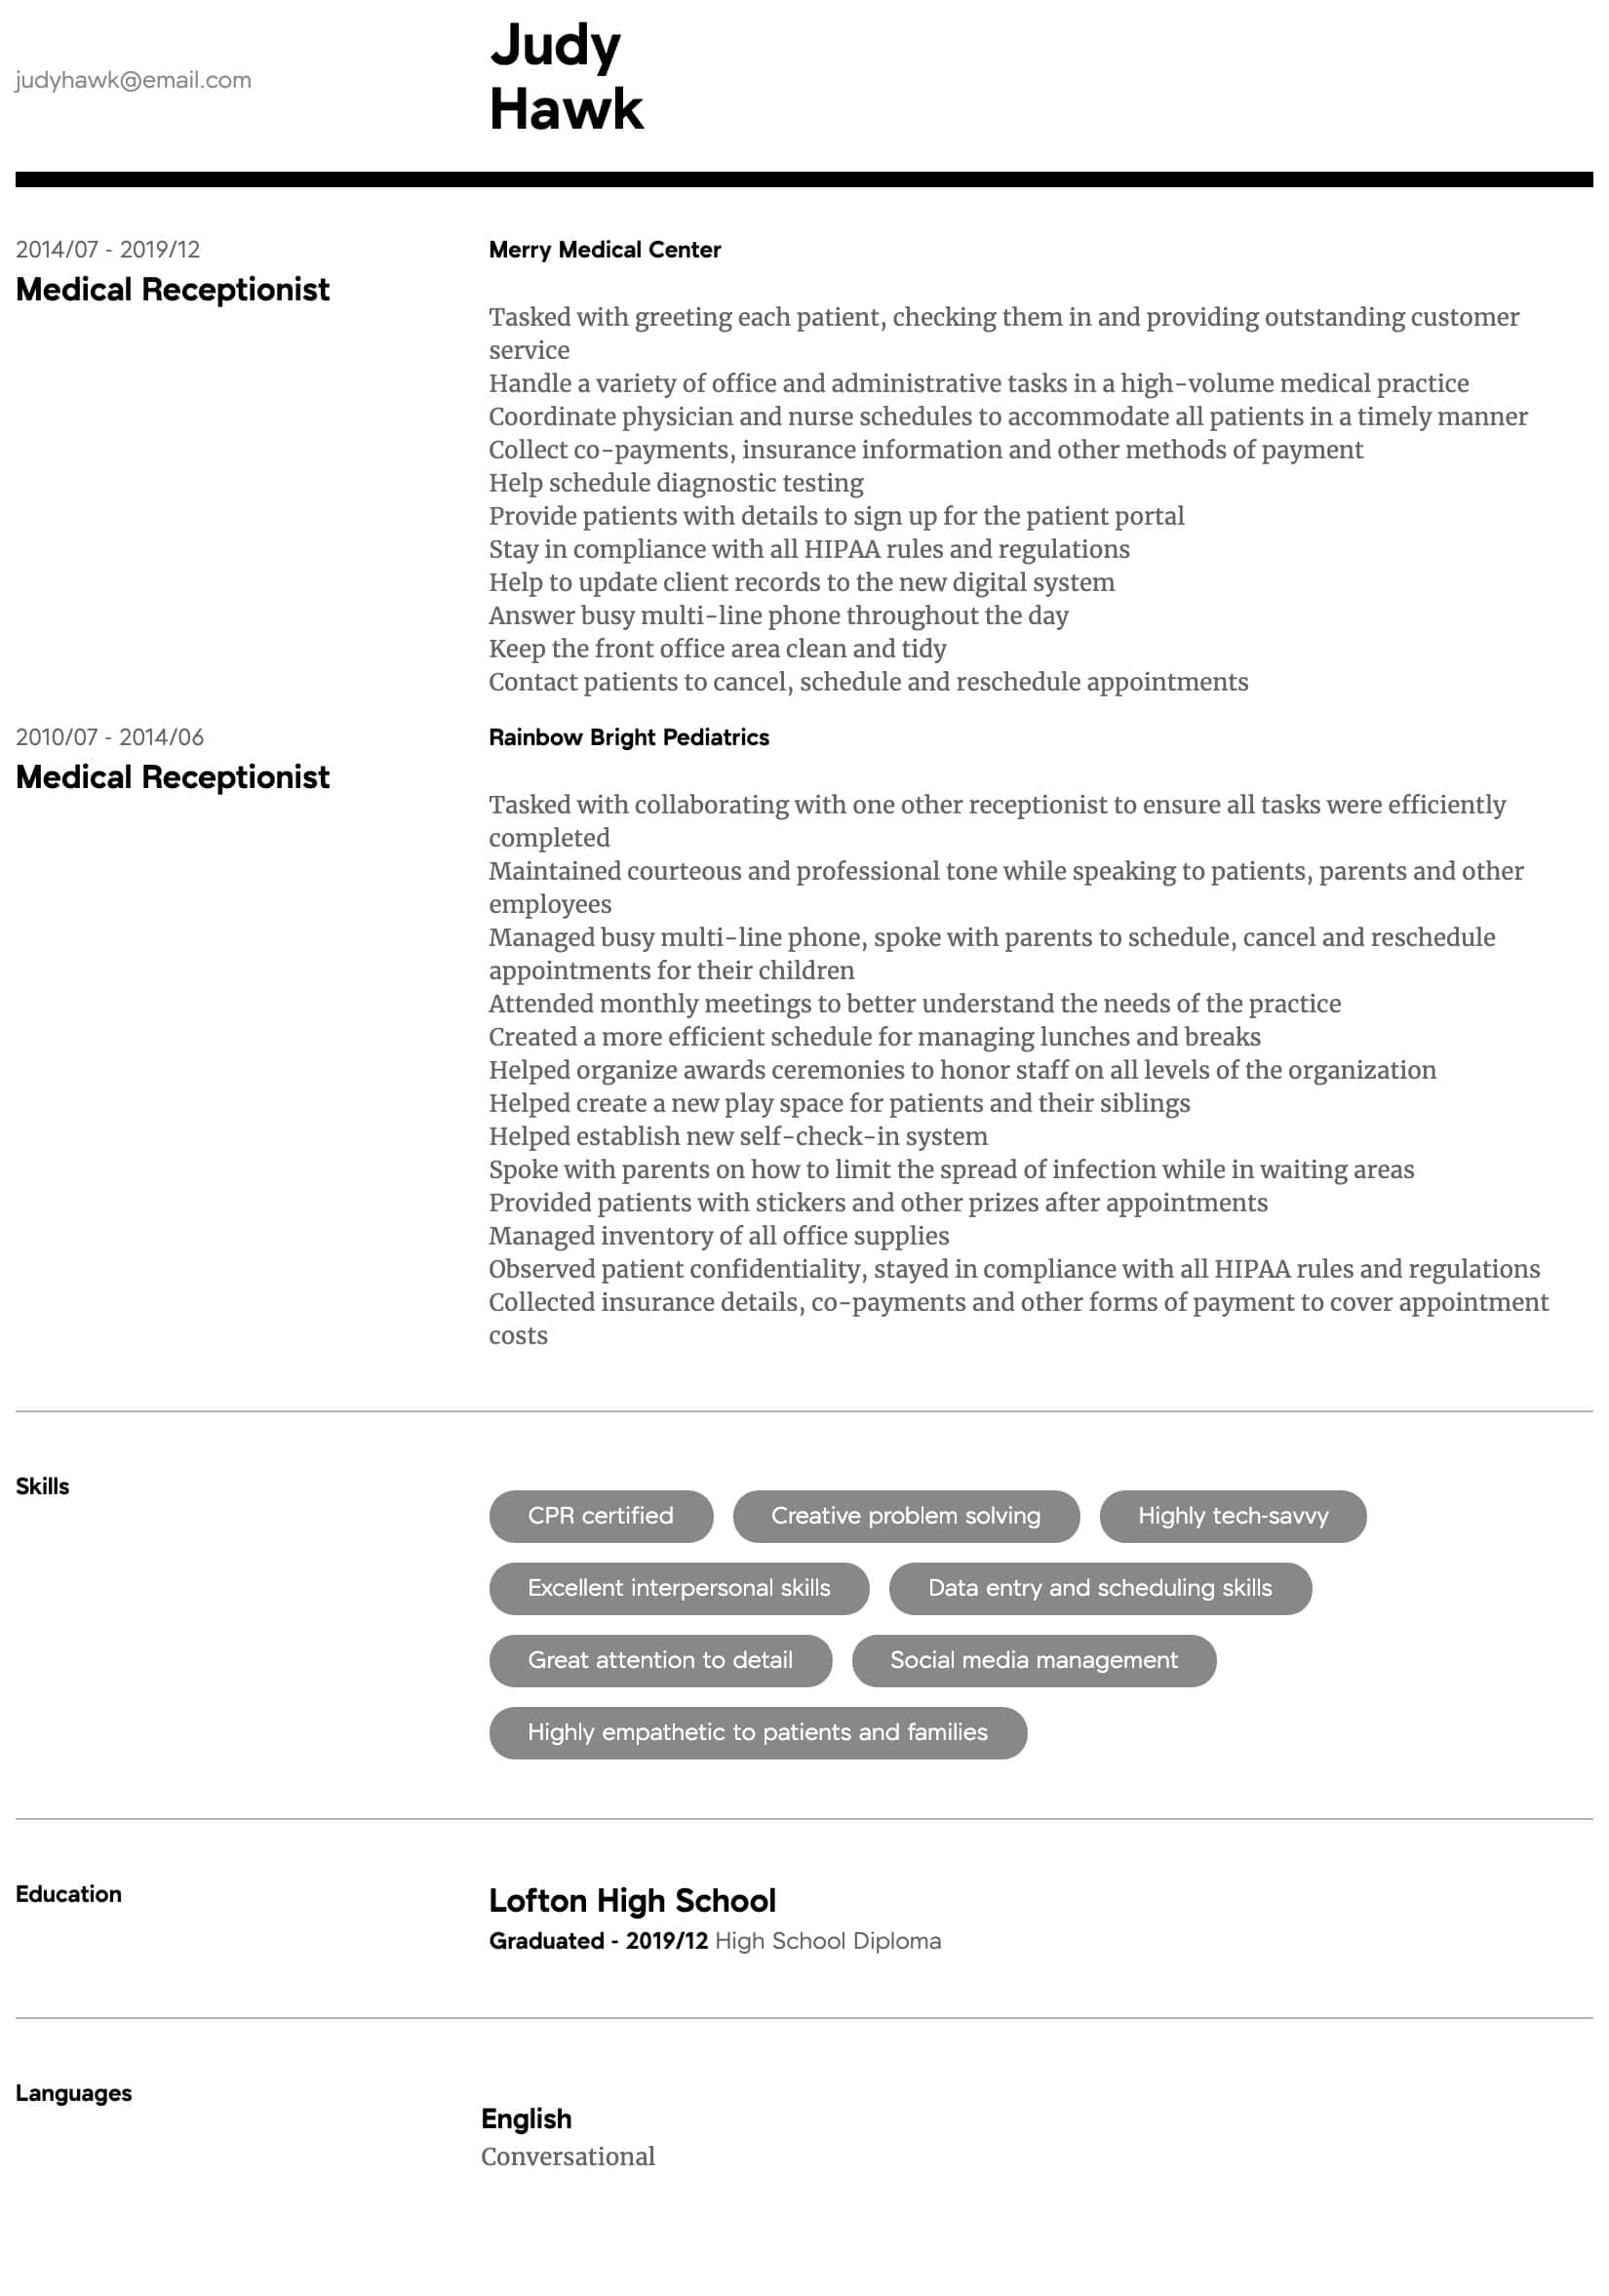 medical receptionist resume samples all experience levels description for intermediate Resume Receptionist Description For Resume